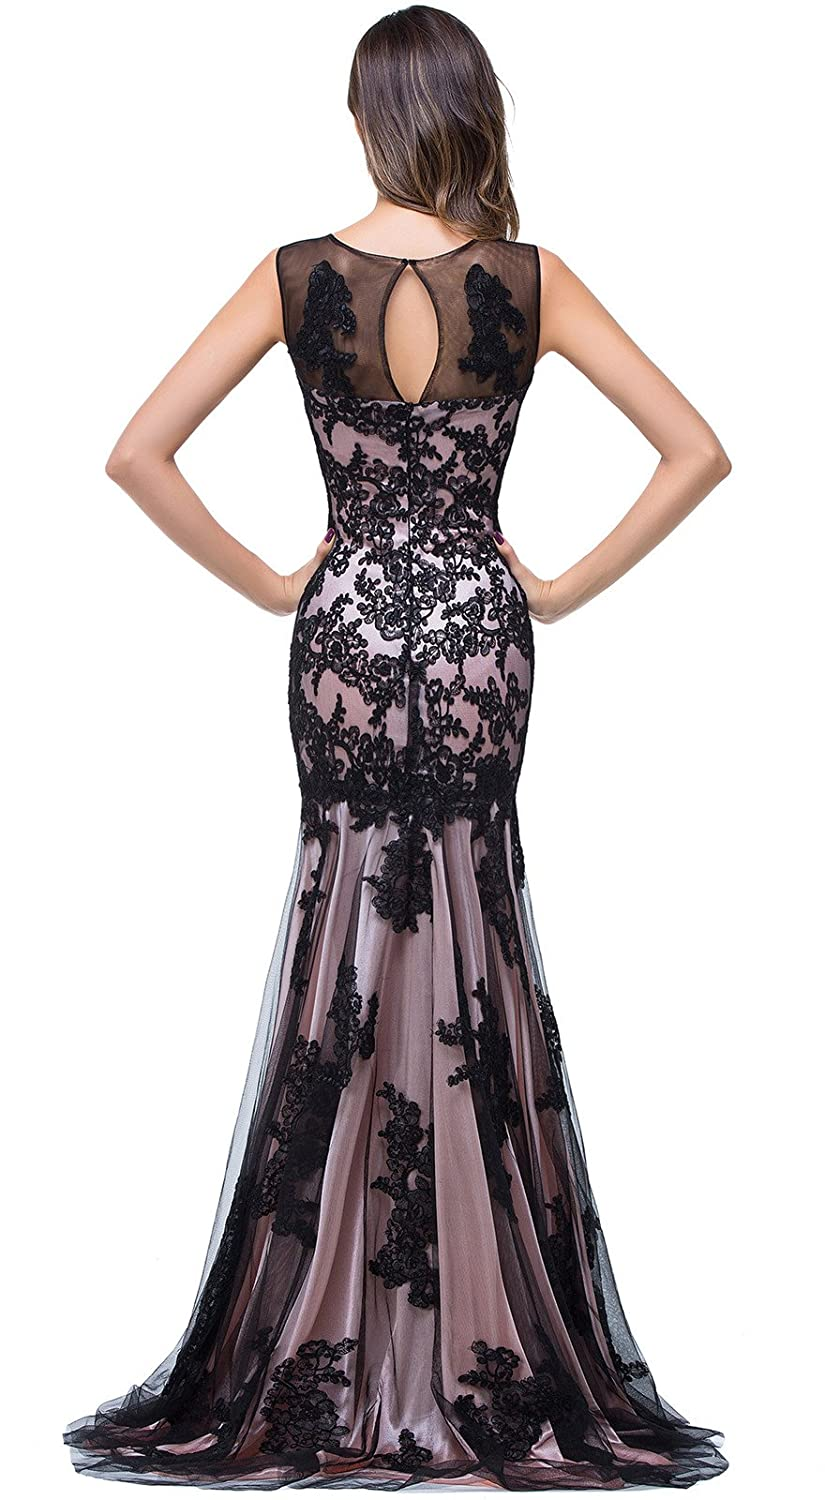 Amazon.com: Babyonline Black Lace Mermaid Evening Dresses Sleeveless Long Maxi Party Gown: Clothing